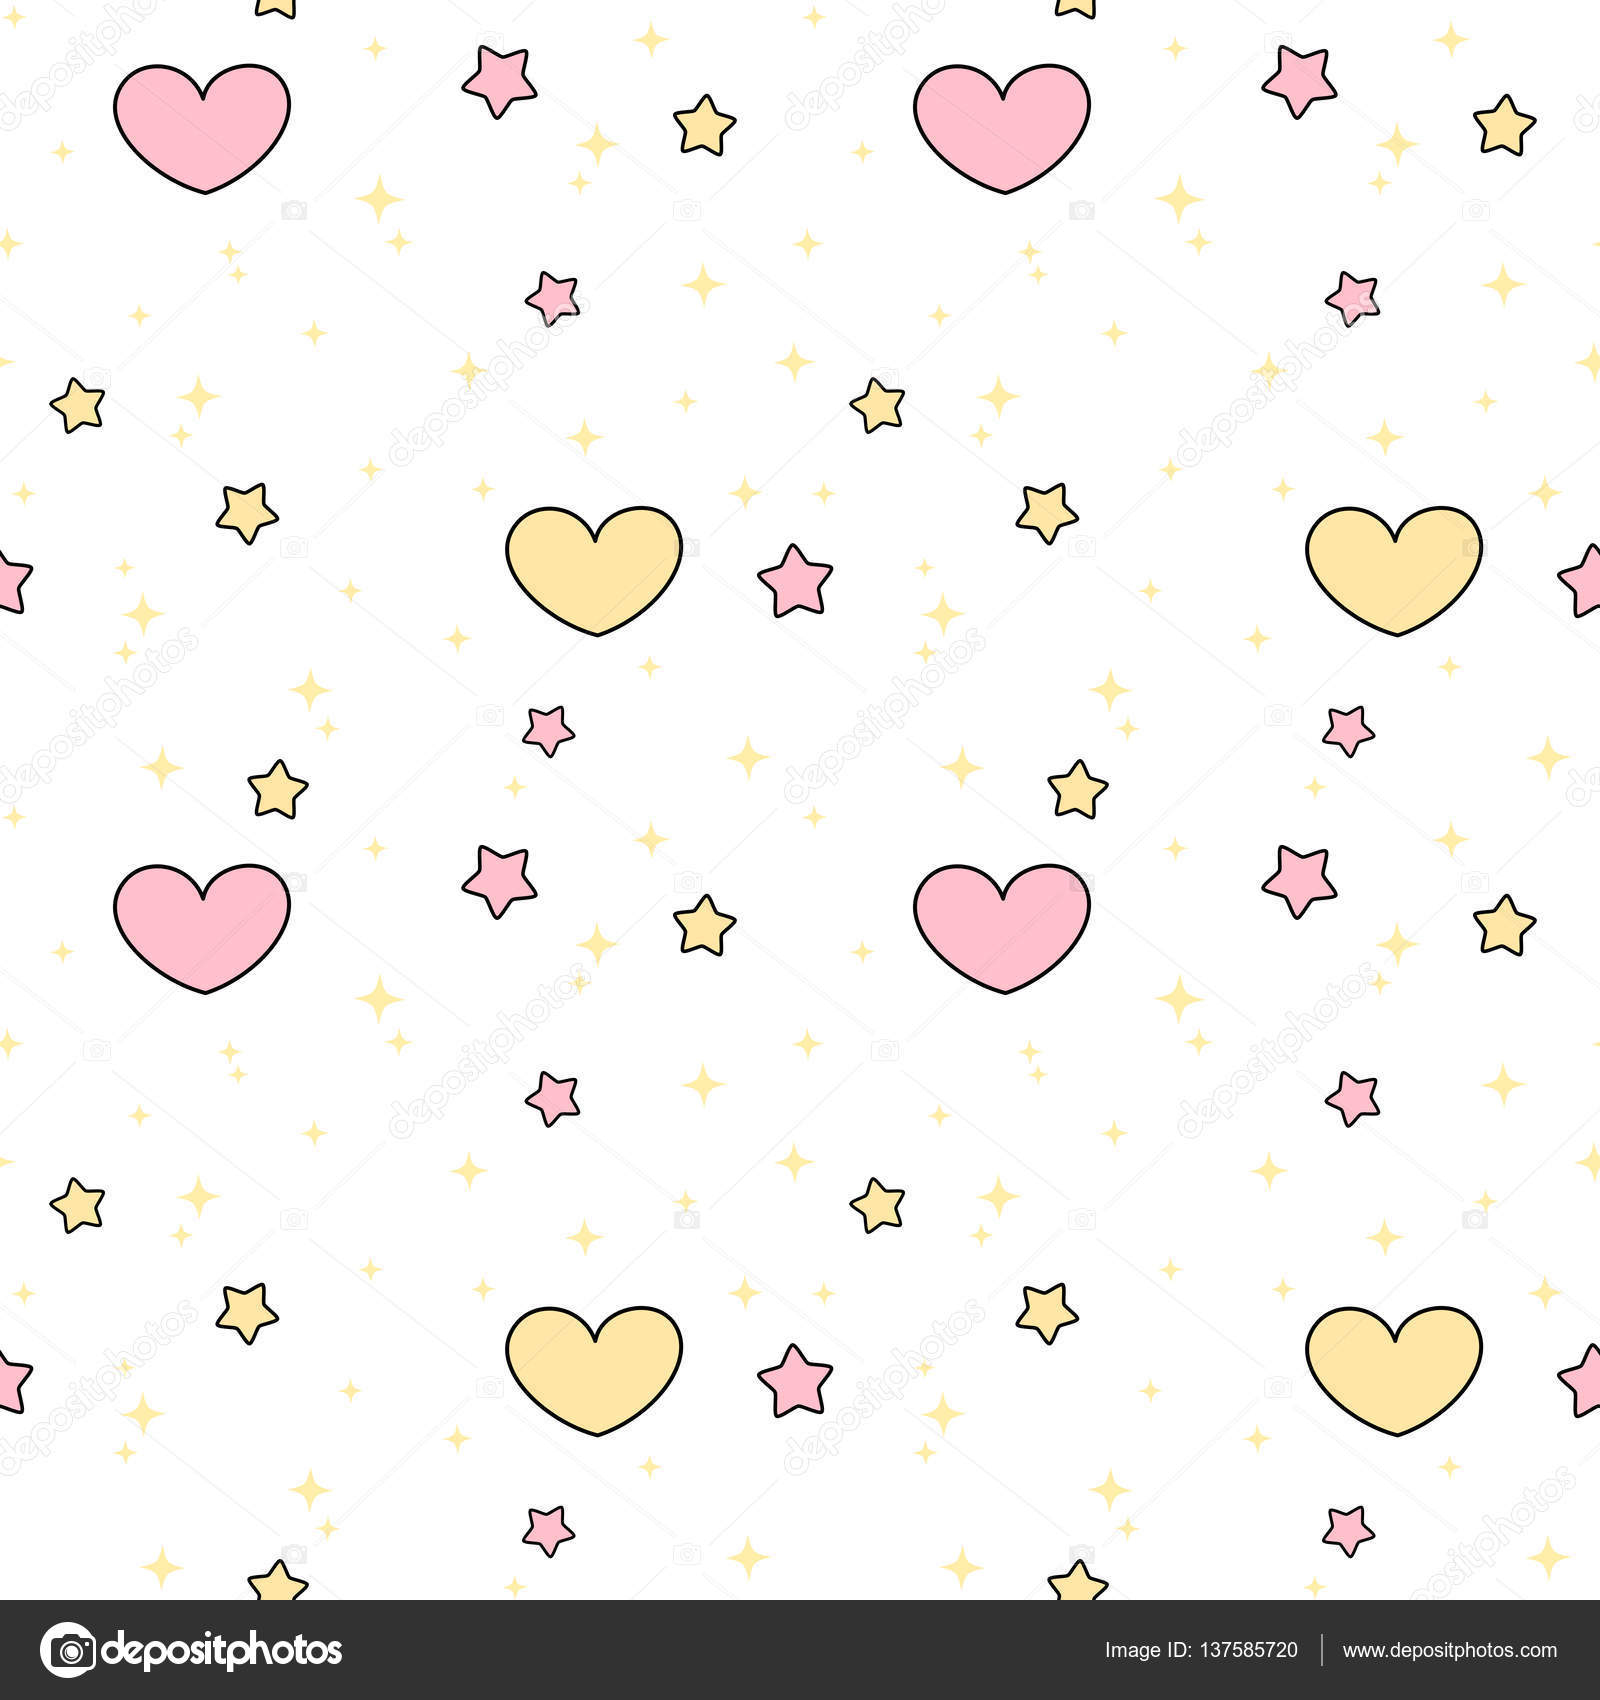 Cute Lovely Pink Yellow Hearts And Stars Seamless Vector Pattern Background Illustration Stock Vector C Alicev1978 137585720